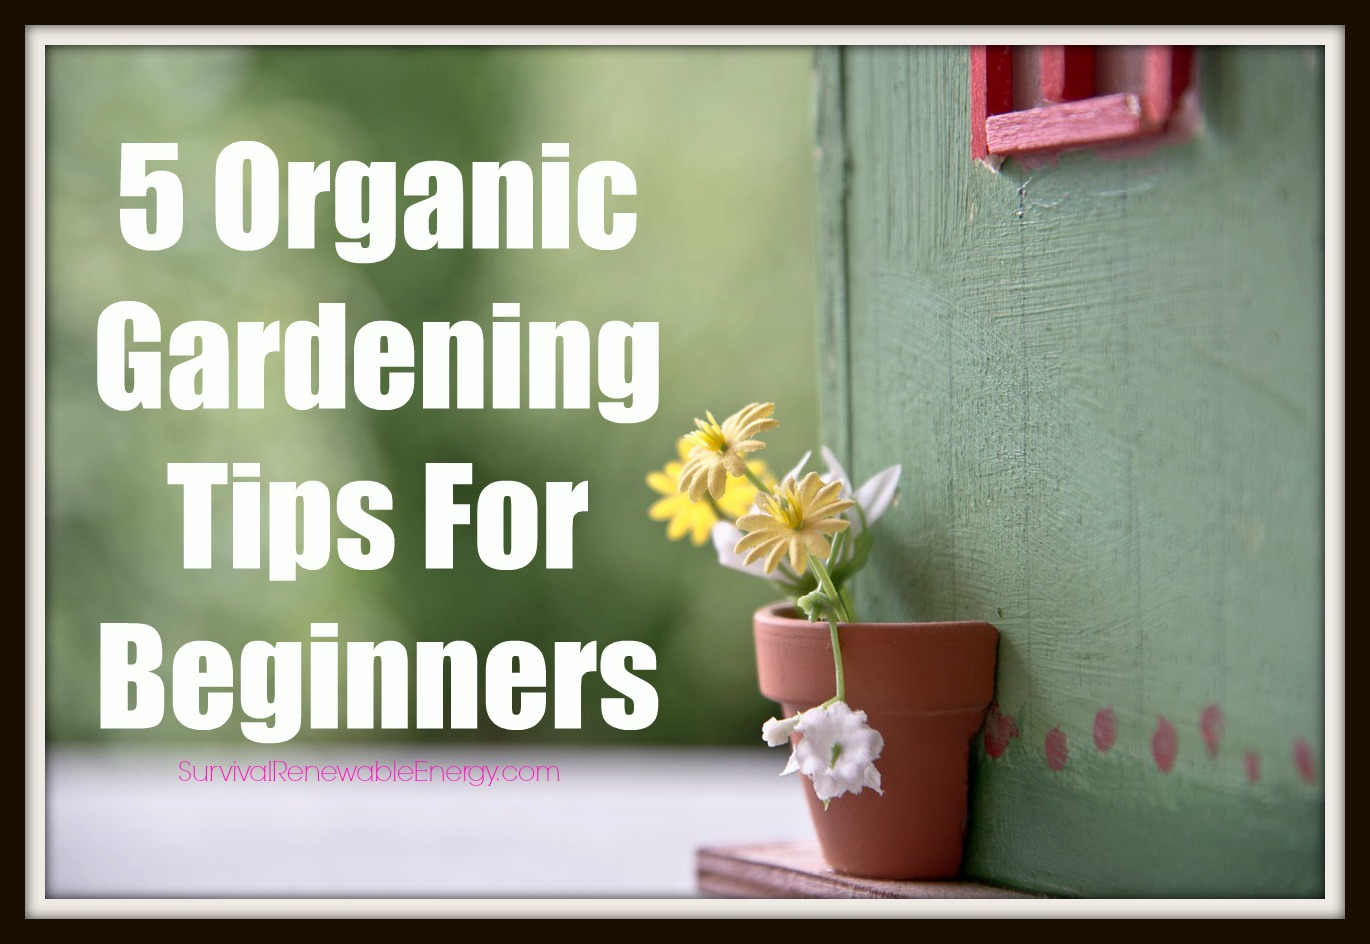 5 Organic Gardening Tips For Beginners